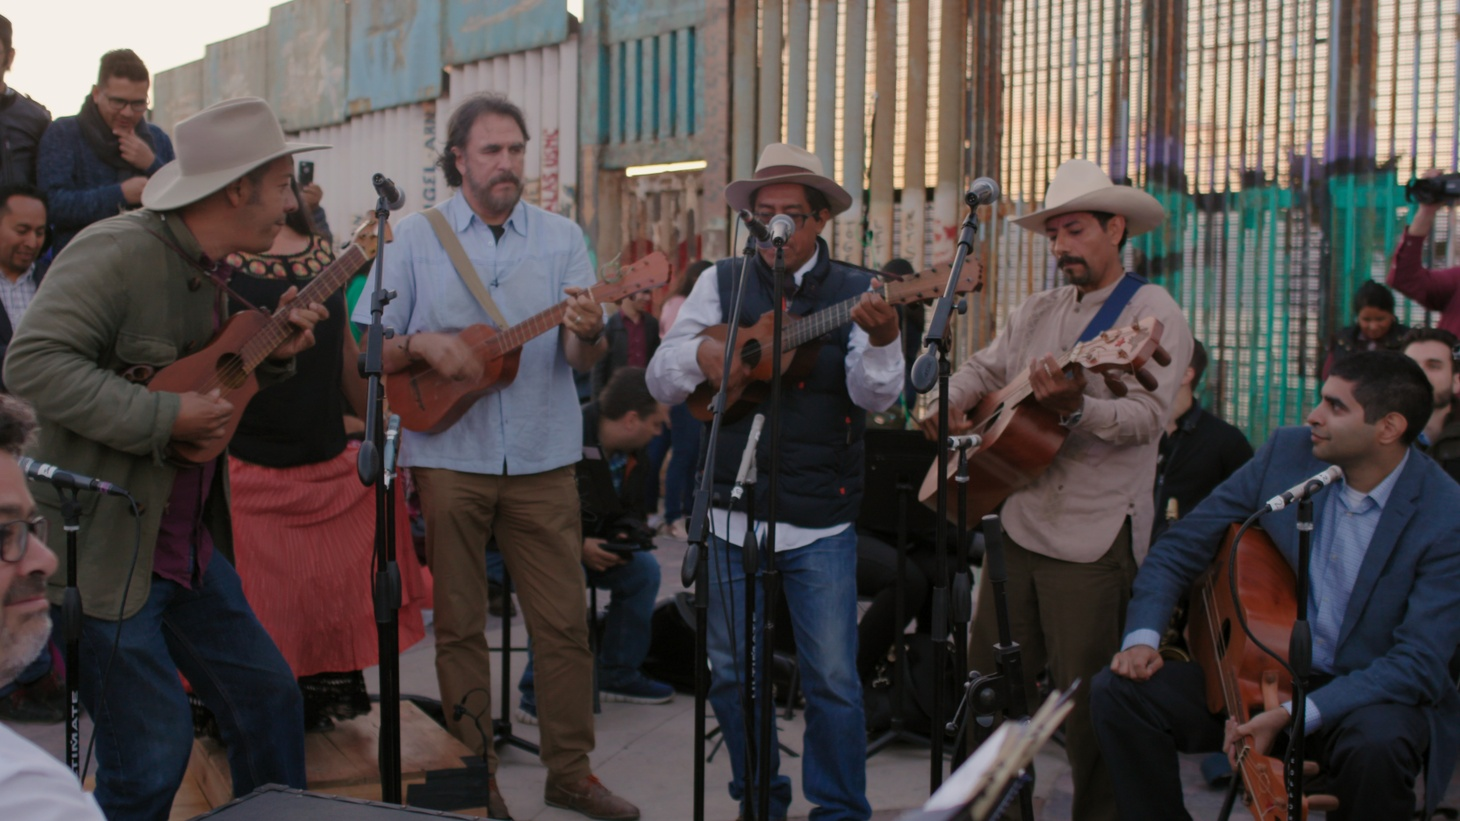 Each year, musicians in San Diego and Tijuana gather at the border wall to play son jarocho, a 500-year-old mix of Spanish, Indigenous, and African music from Veracruz.